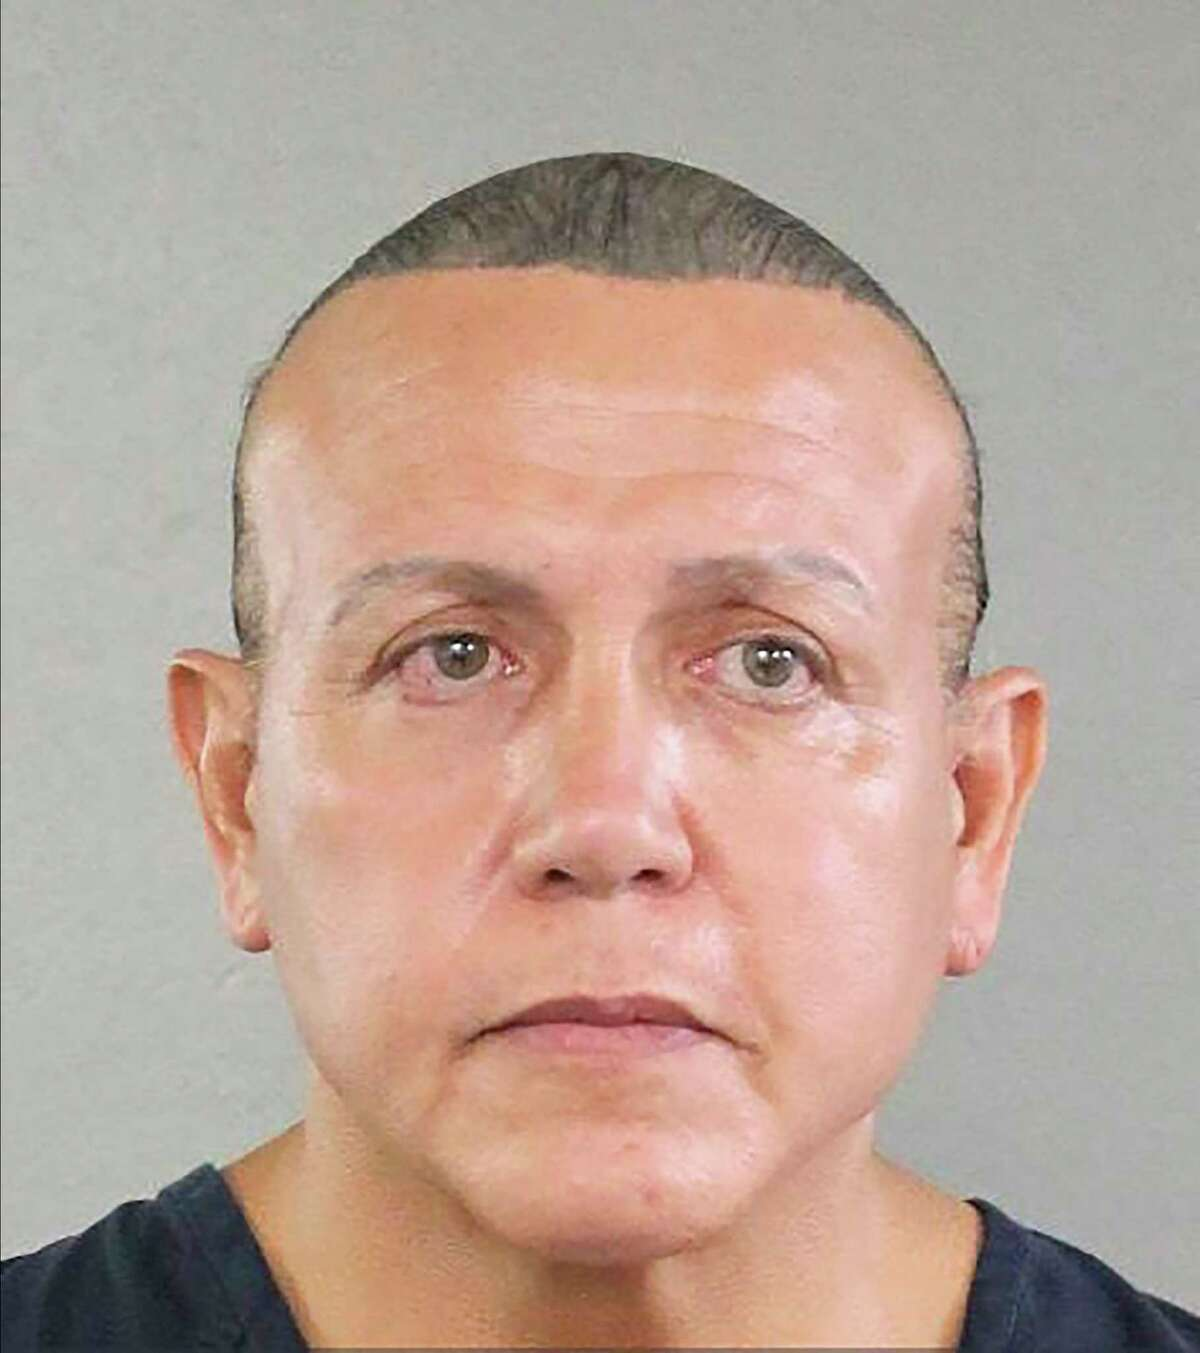 A photo provided by the Broward County Sheriff's Office of Cesar Sayoc Jr., the man suspected of mailing a dozen parcel bombs to critics of President Donald Trump in 2018. Sayoc, a Trump supporter who prosecutors say mailed pipe bombs to prominent Democrats, has decided to enter a guilty plea, according to a court docket. (Broward County Sheriff's Office via The New York Times) -- FOR EDITORIAL USE ONLY --